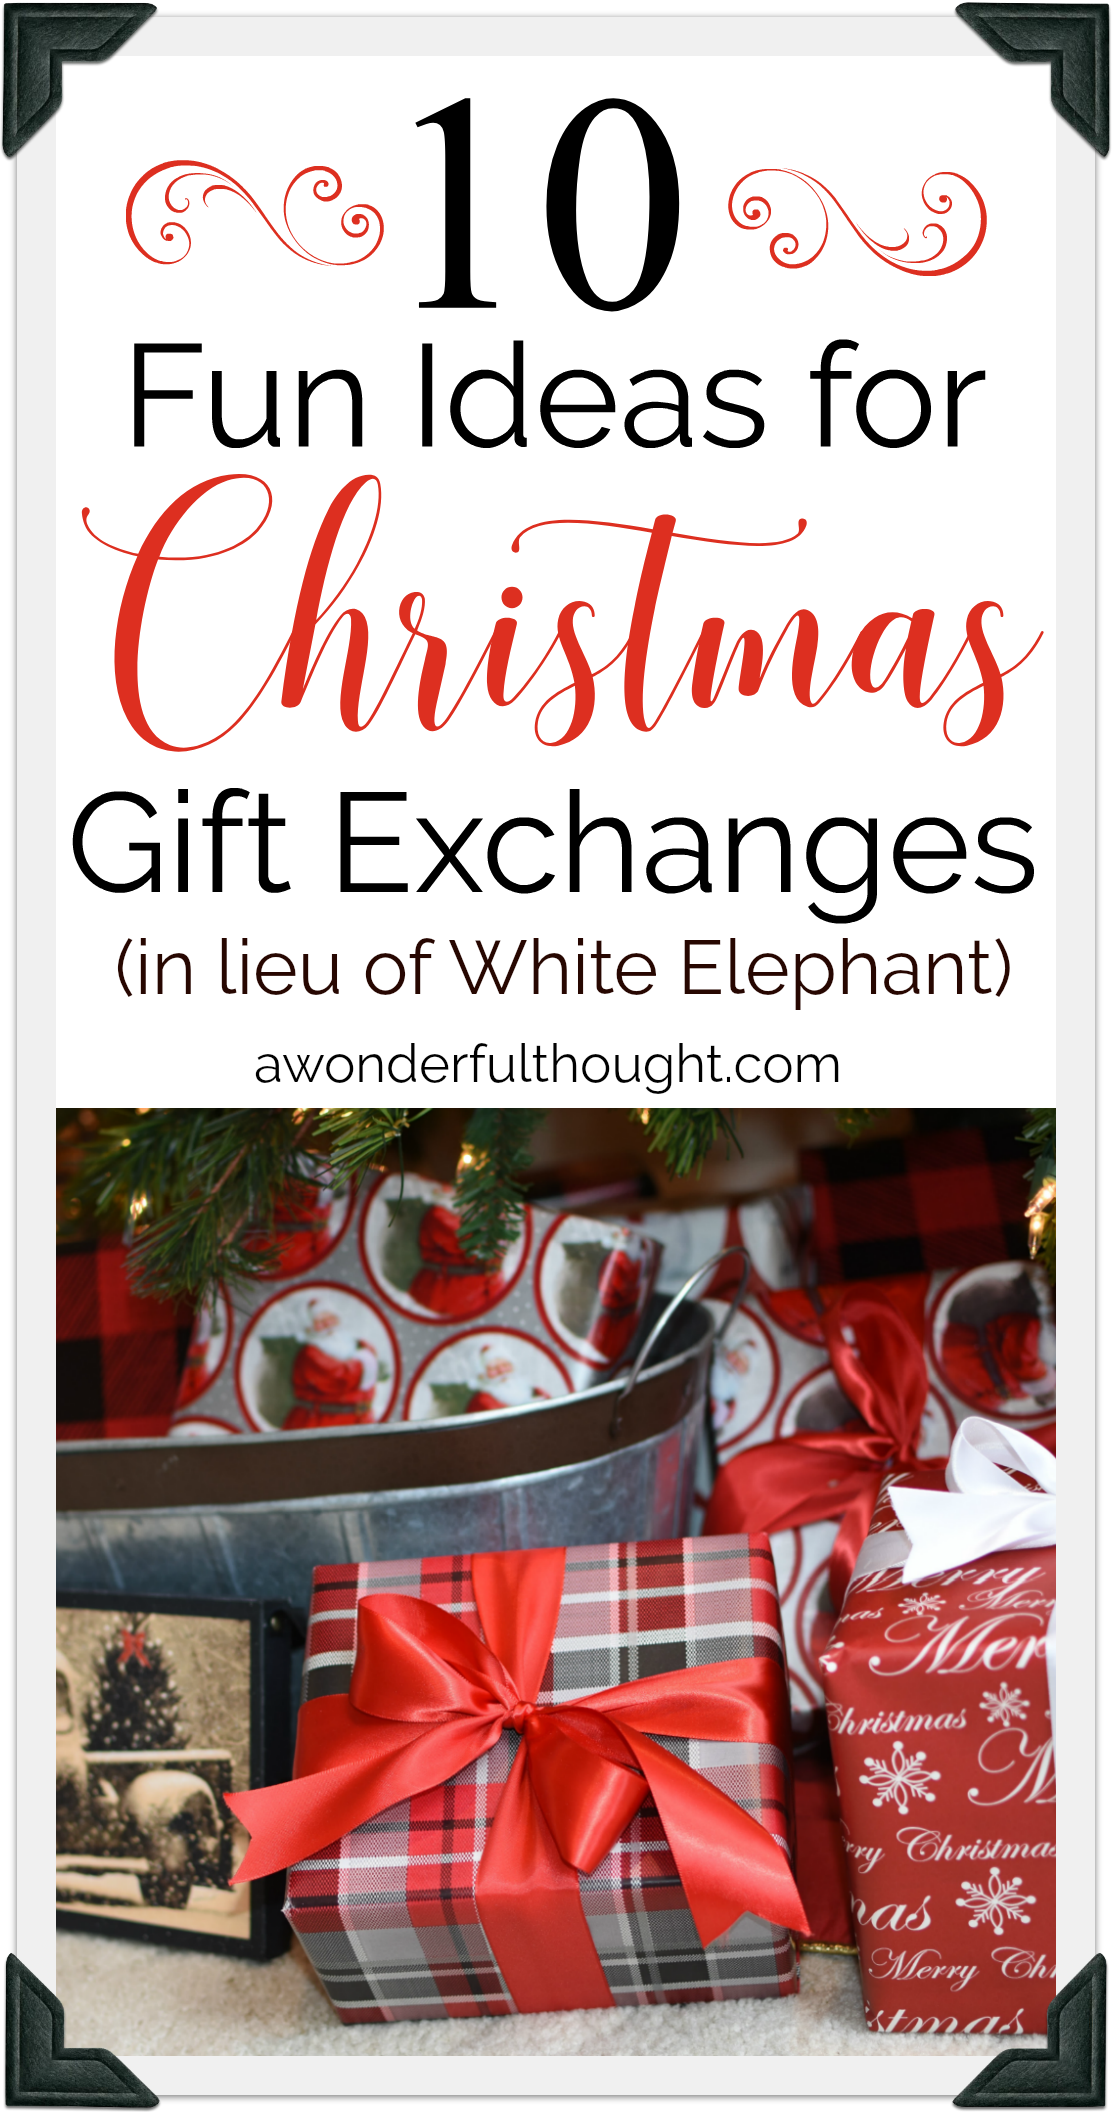 Christmas Gift Exchange Ideas | Christmas gifts for adults ...